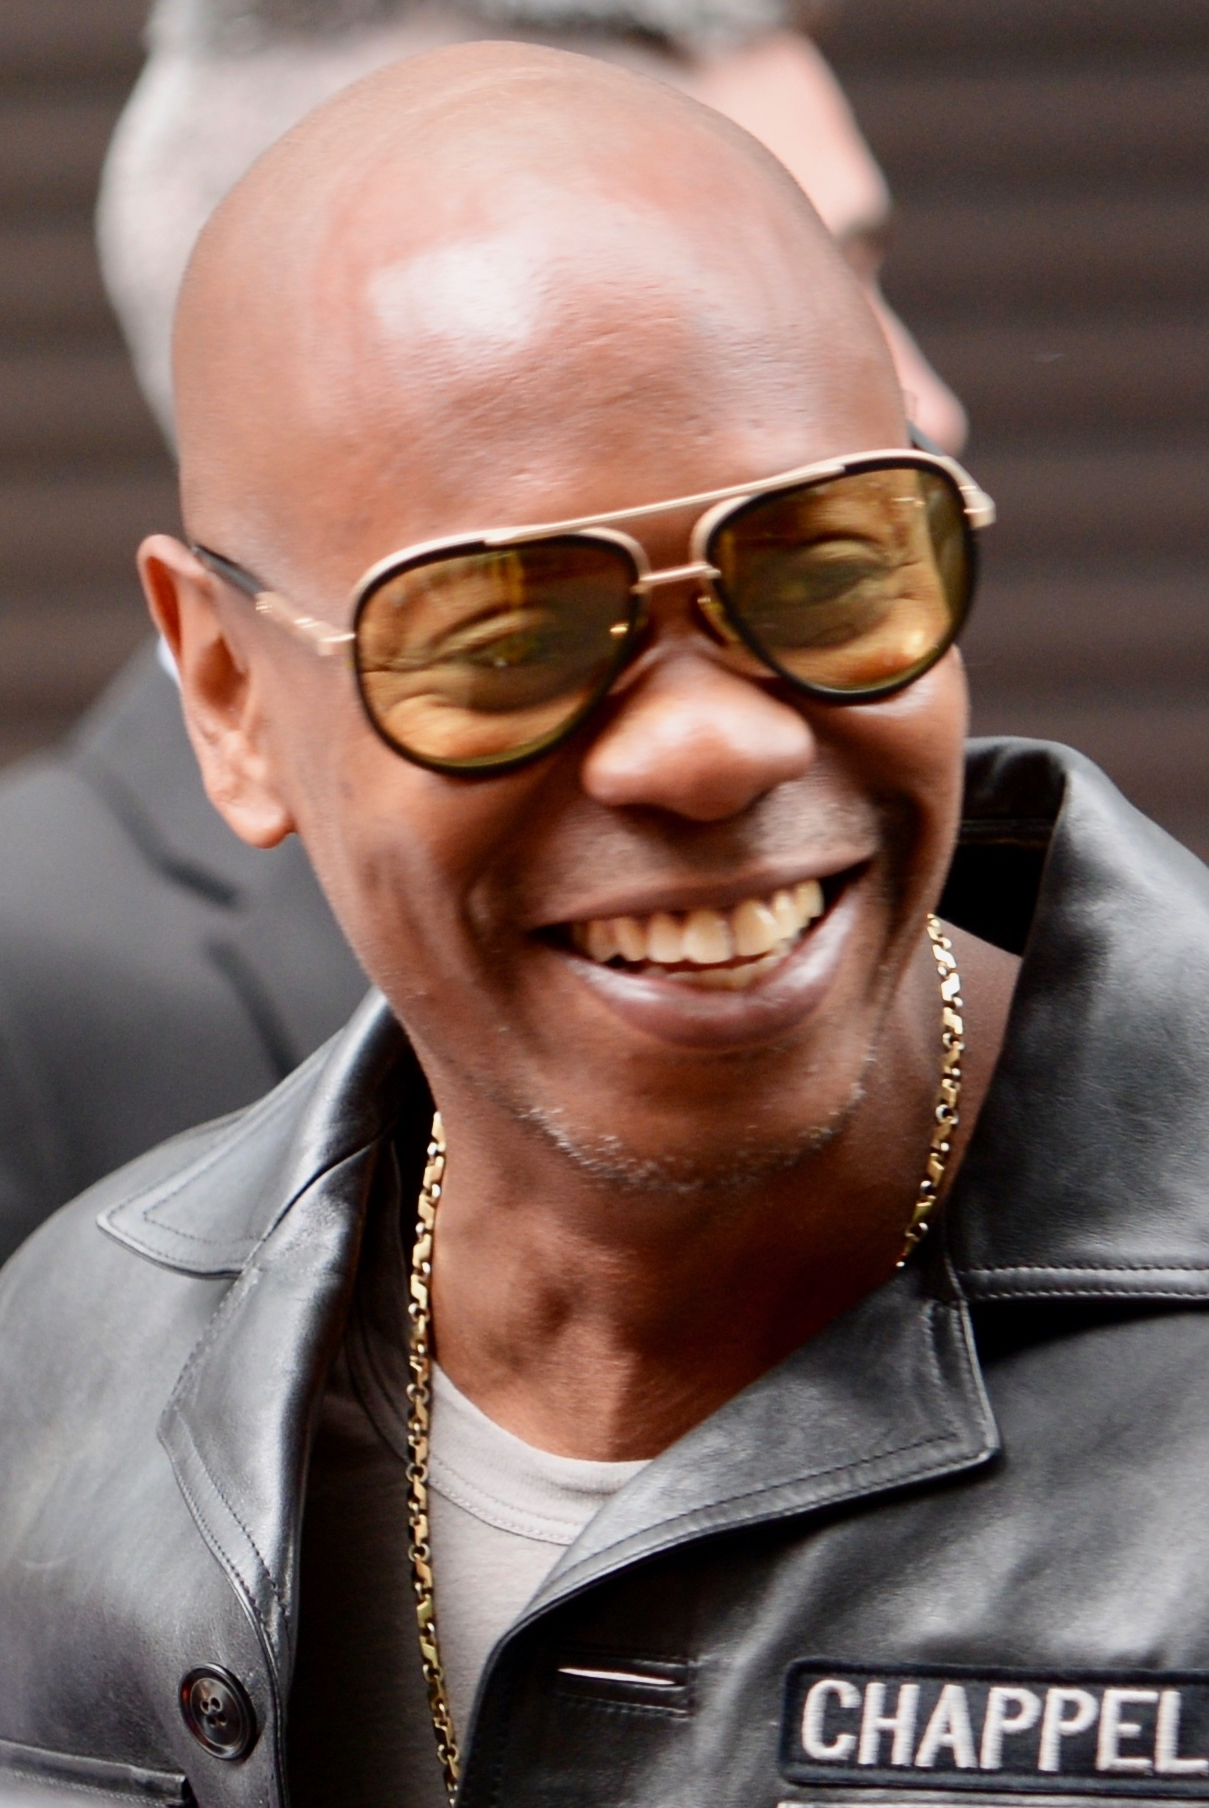 The 47-year old son of father William Chappelle and mother Seon Chappelle Dave Chappelle in 2021 photo. Dave Chappelle earned a  million dollar salary - leaving the net worth at 42 million in 2021